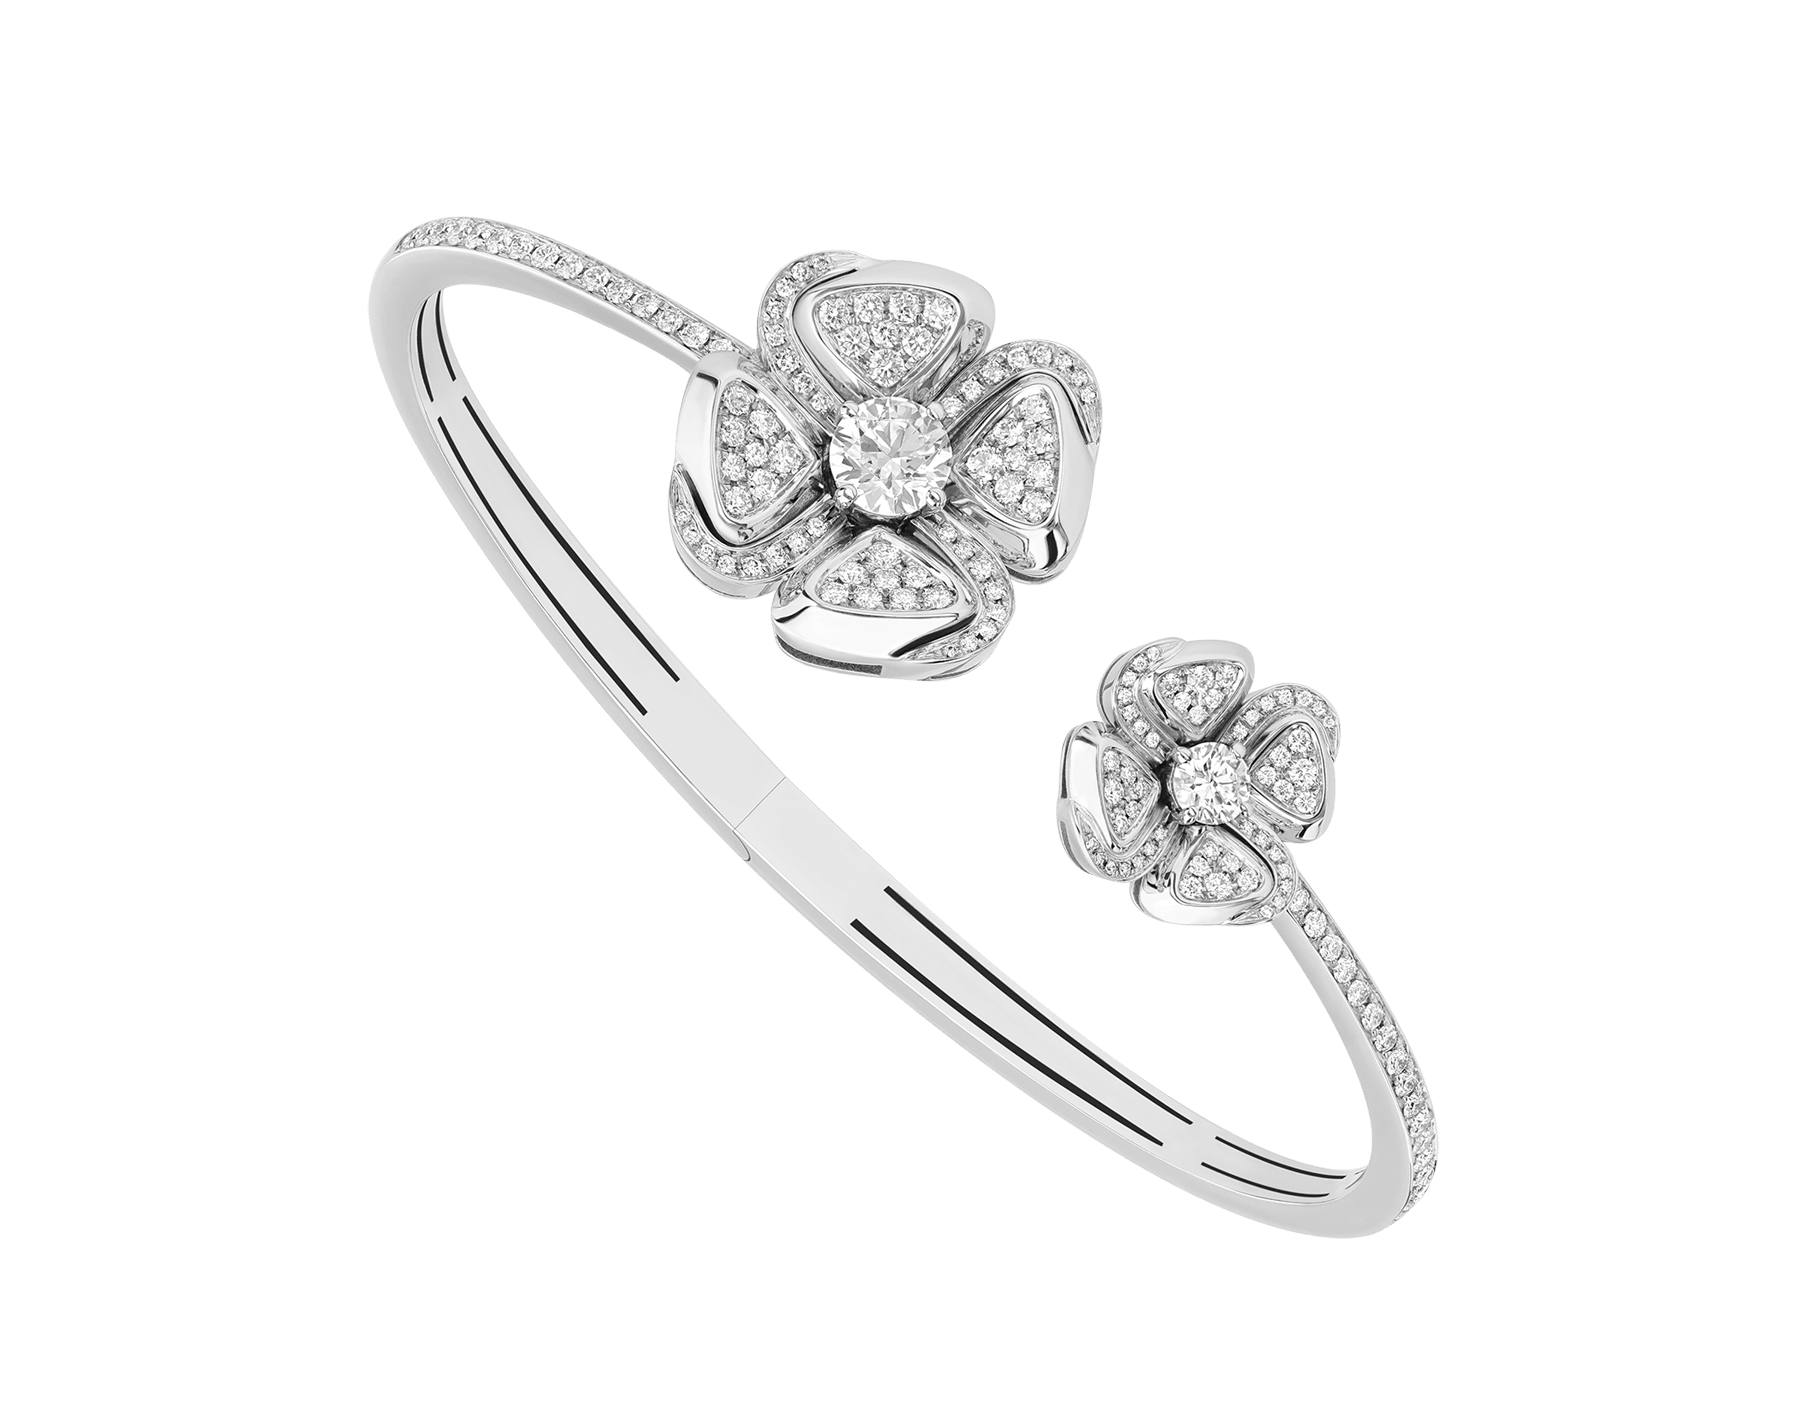 Fiorever 18 kt white gold bangle set with two central diamonds (0.50 ct and 0.15 ct) and pavé diamonds BR858890 image 1